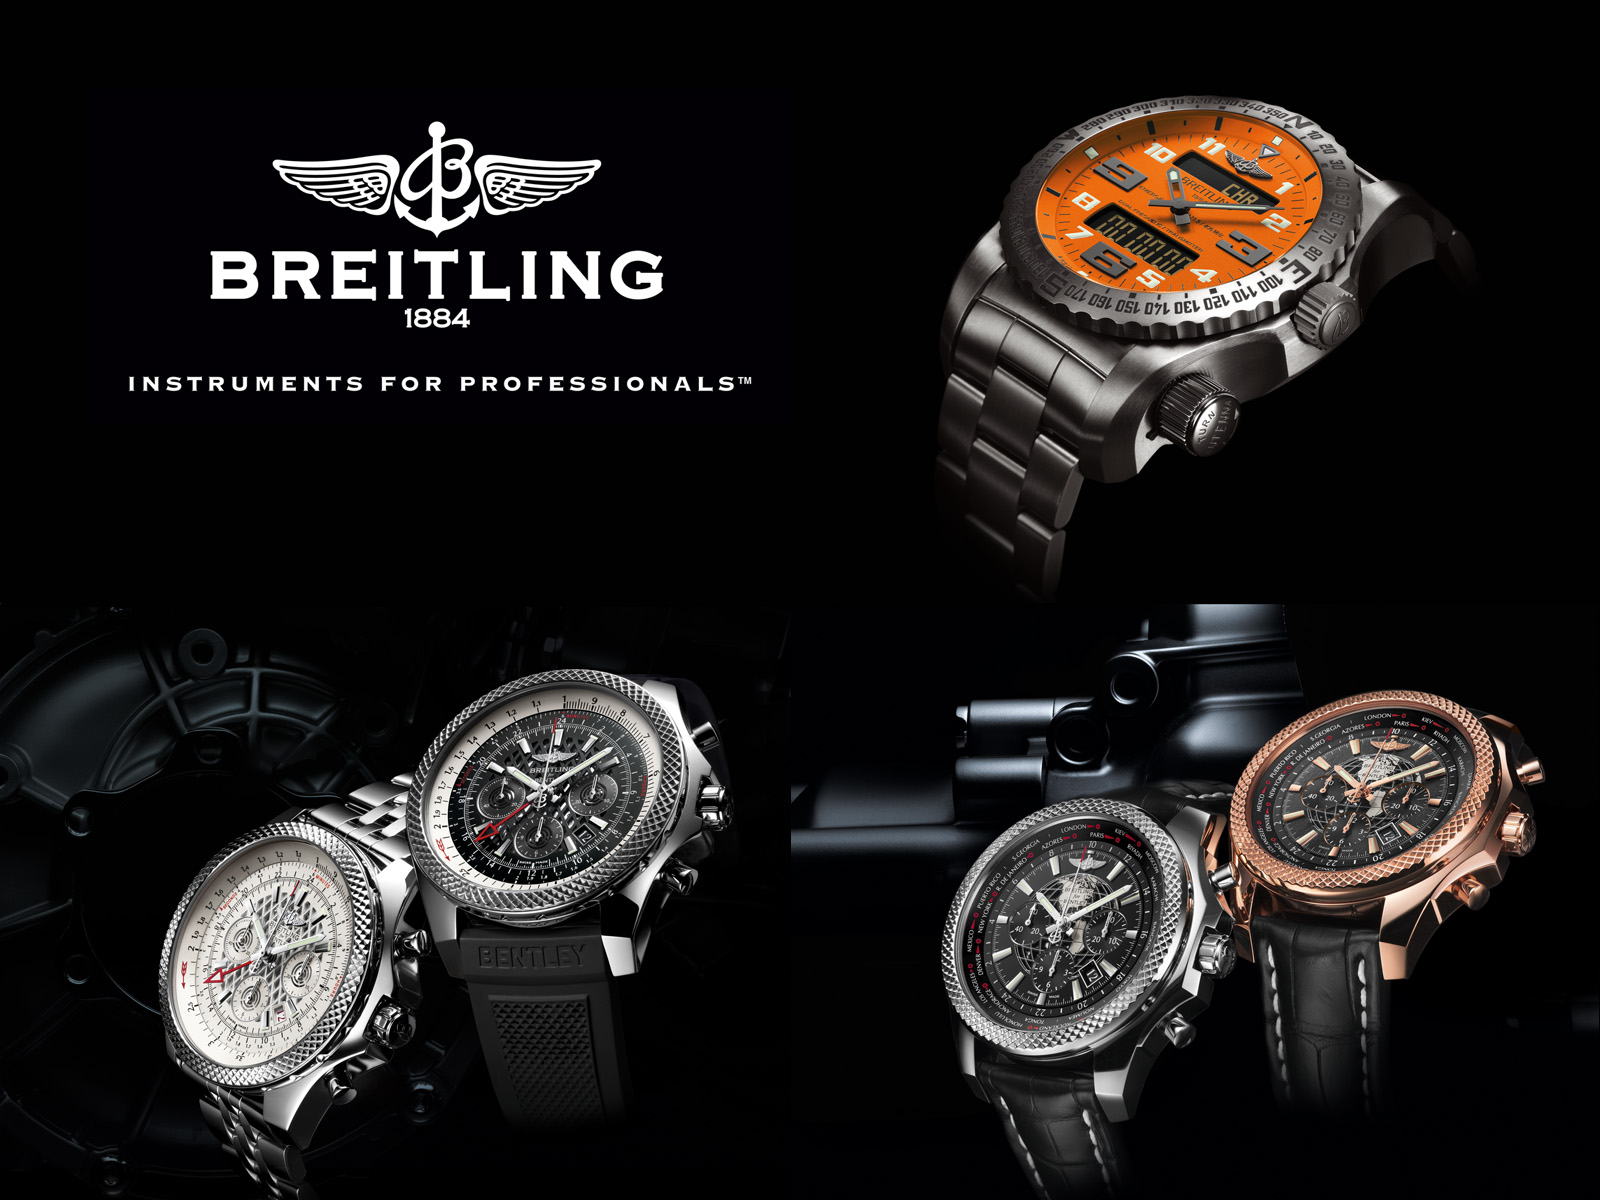 Baselworld 2013: Saved with Breitling